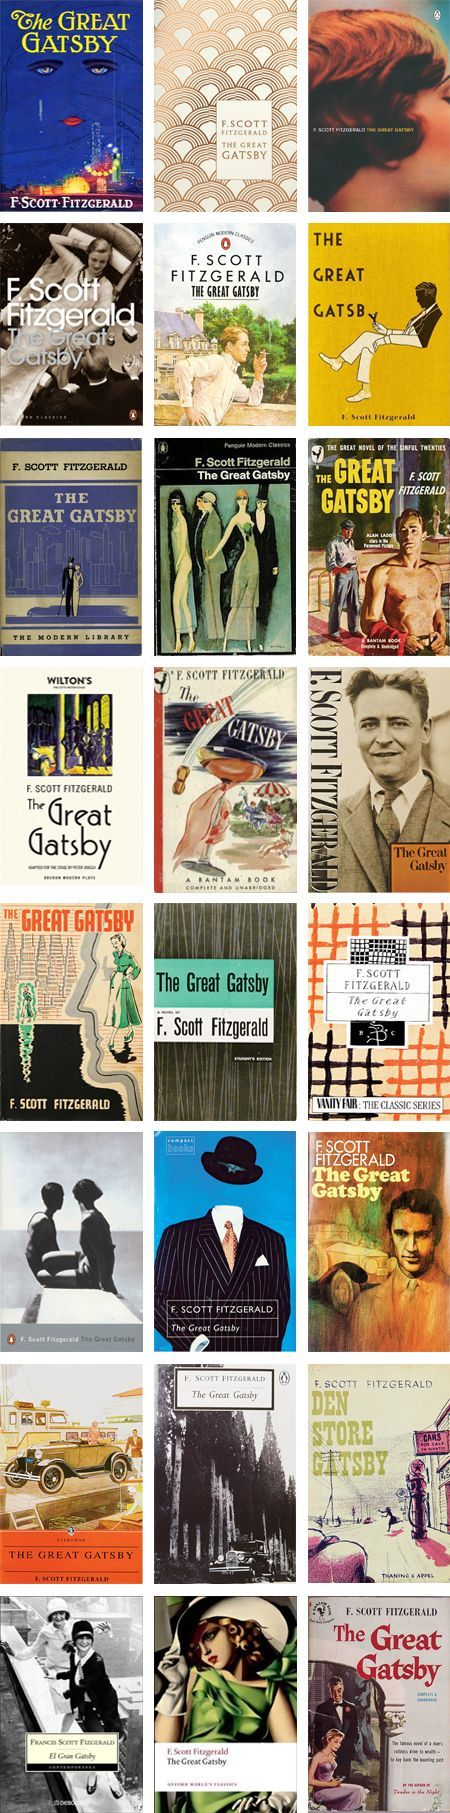 "the great gatsby is a story Free essay: the great gatsby - chapter 1 read the beginning of the novel chapter 1 up to page 12 ""tom buchanan in his riding clothes was standing with his."